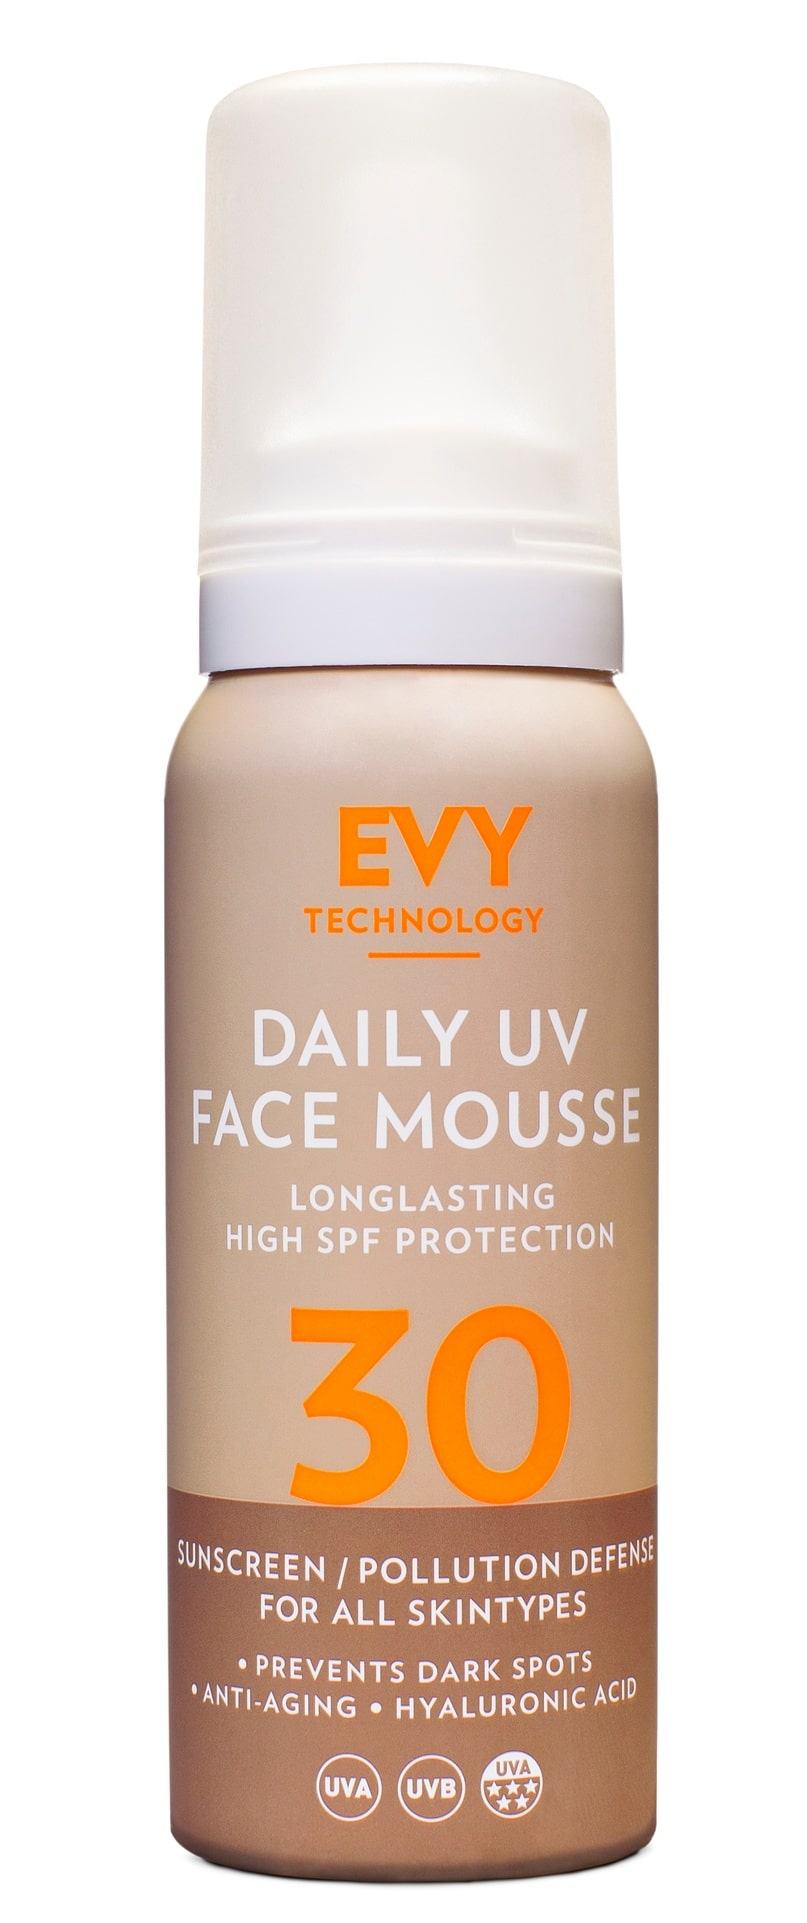 Daily face mousse, Evy.